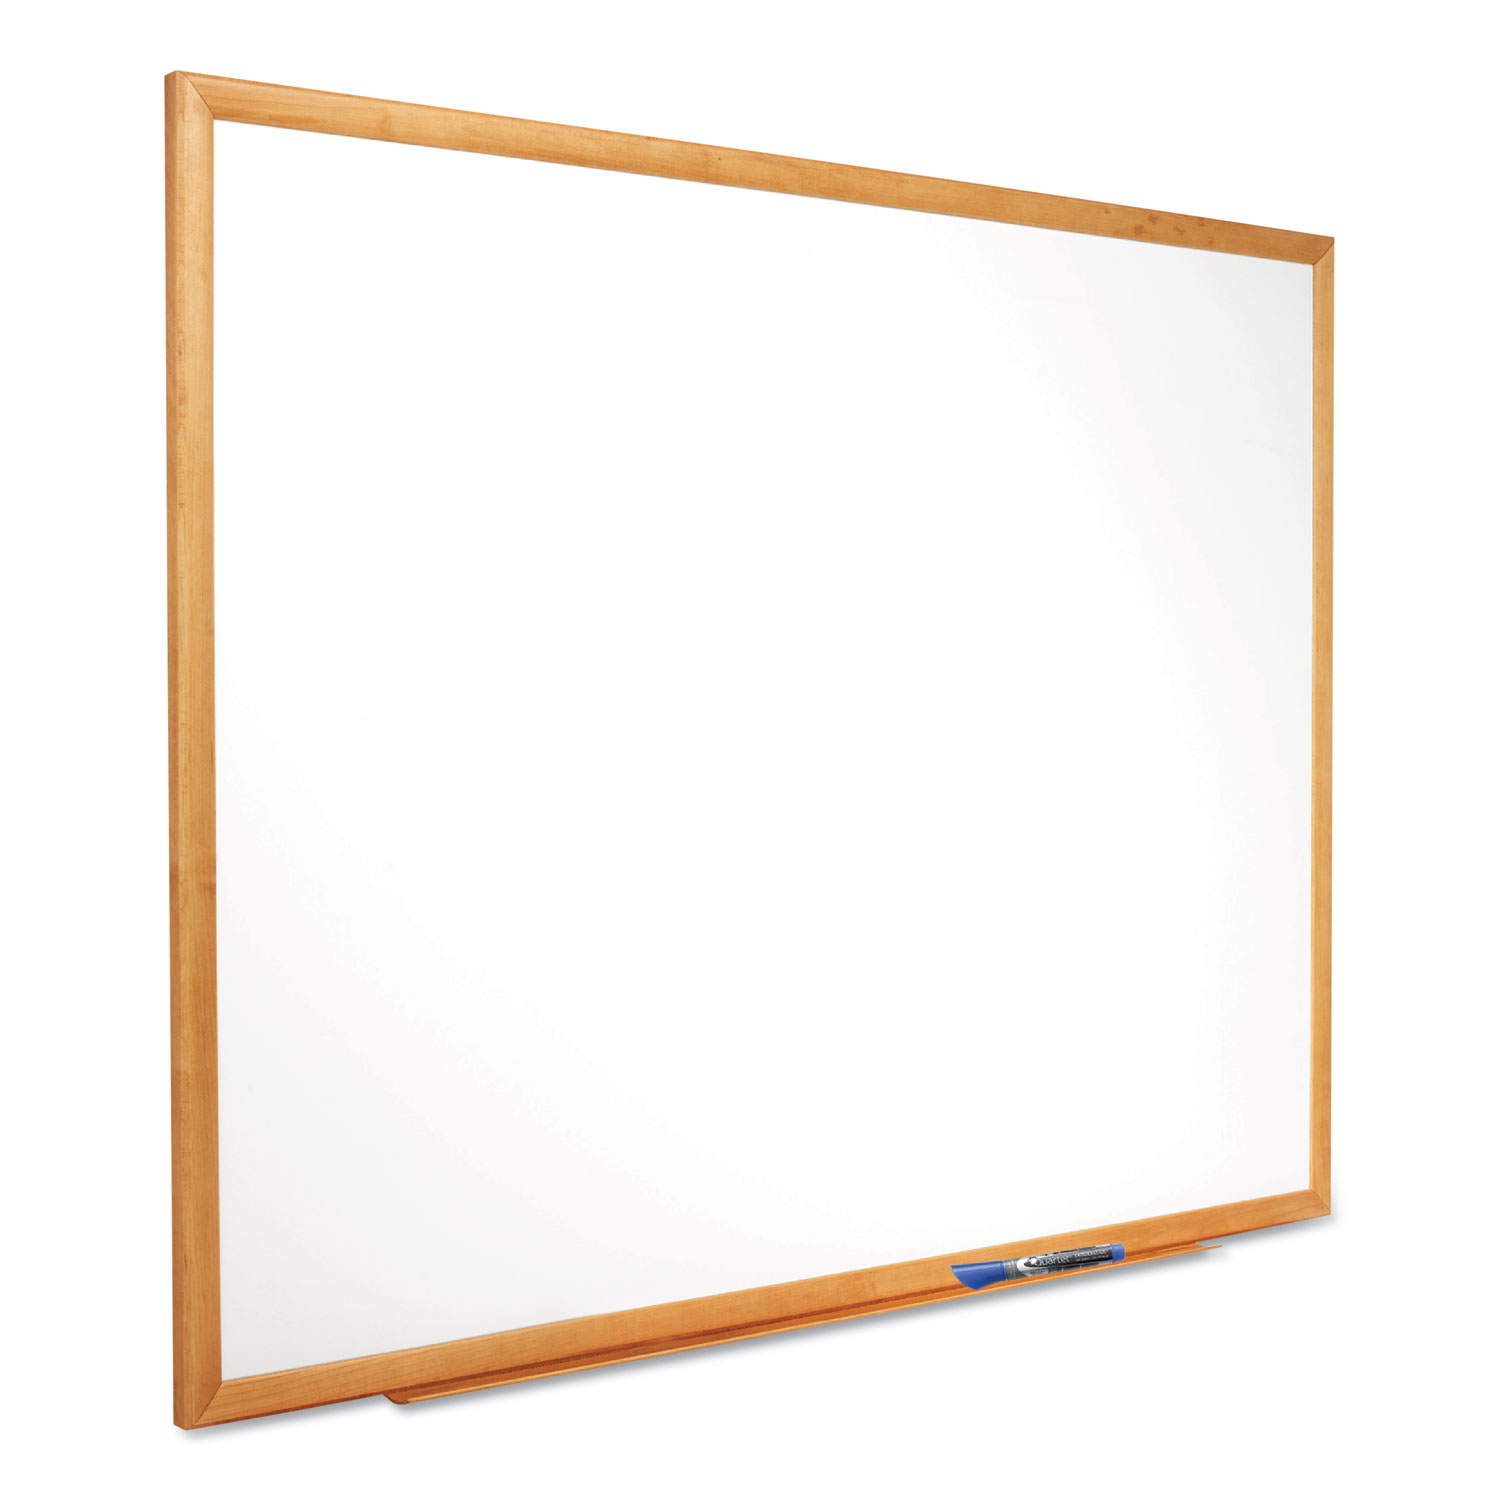 Picture of Classic Series Total Erase Dry Erase Board, 96 x 48, Oak Finish Frame